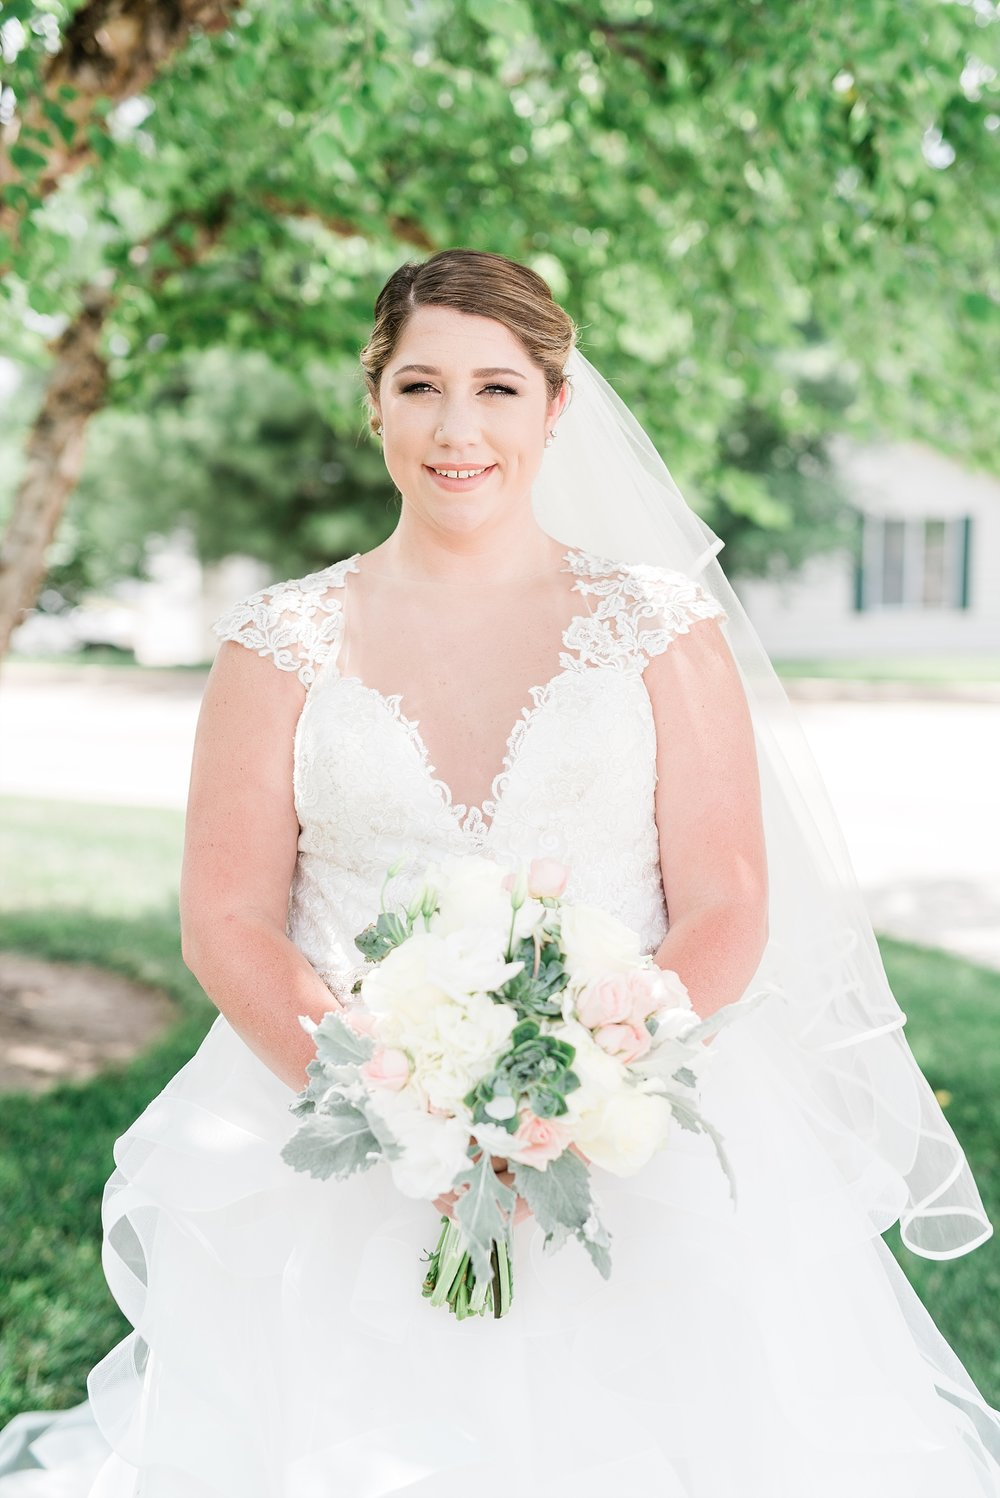 Baurichter Wedding at Stoney Creek Inn Columbia Missouri by Kelsi Kliethermes Photography_0002.jpg